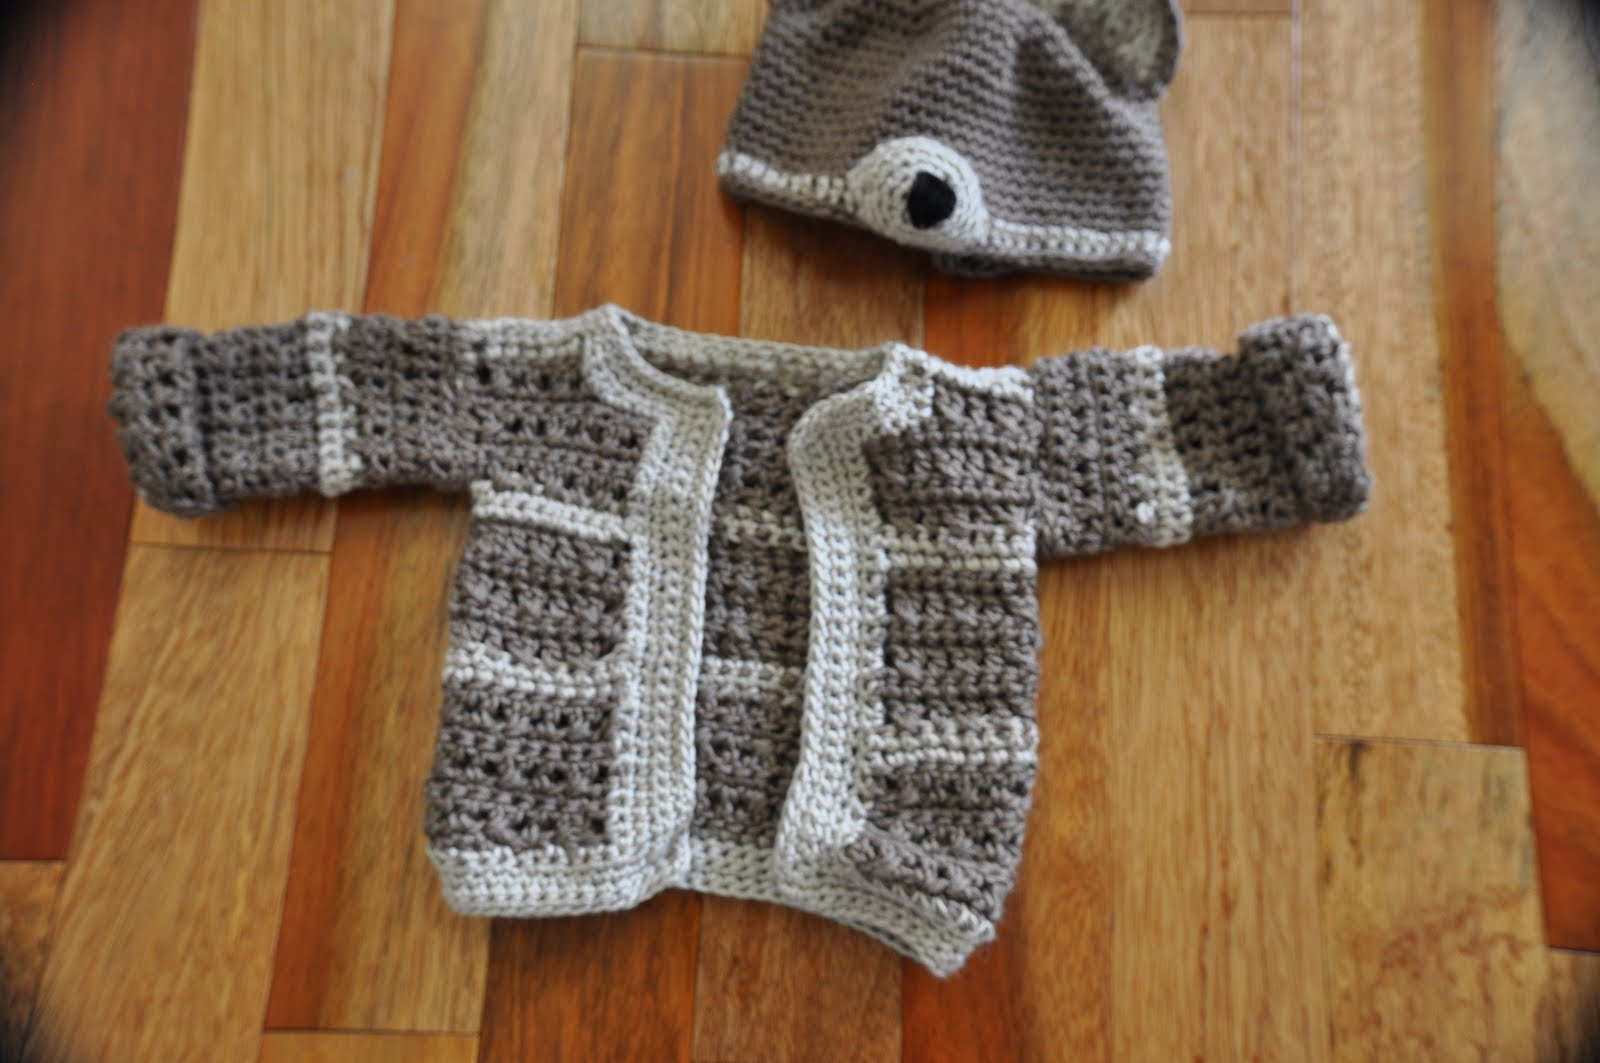 Free Crochet Pattern For A Baby Sweater : Easy Crochet Baby Sweater ? Crochet Club